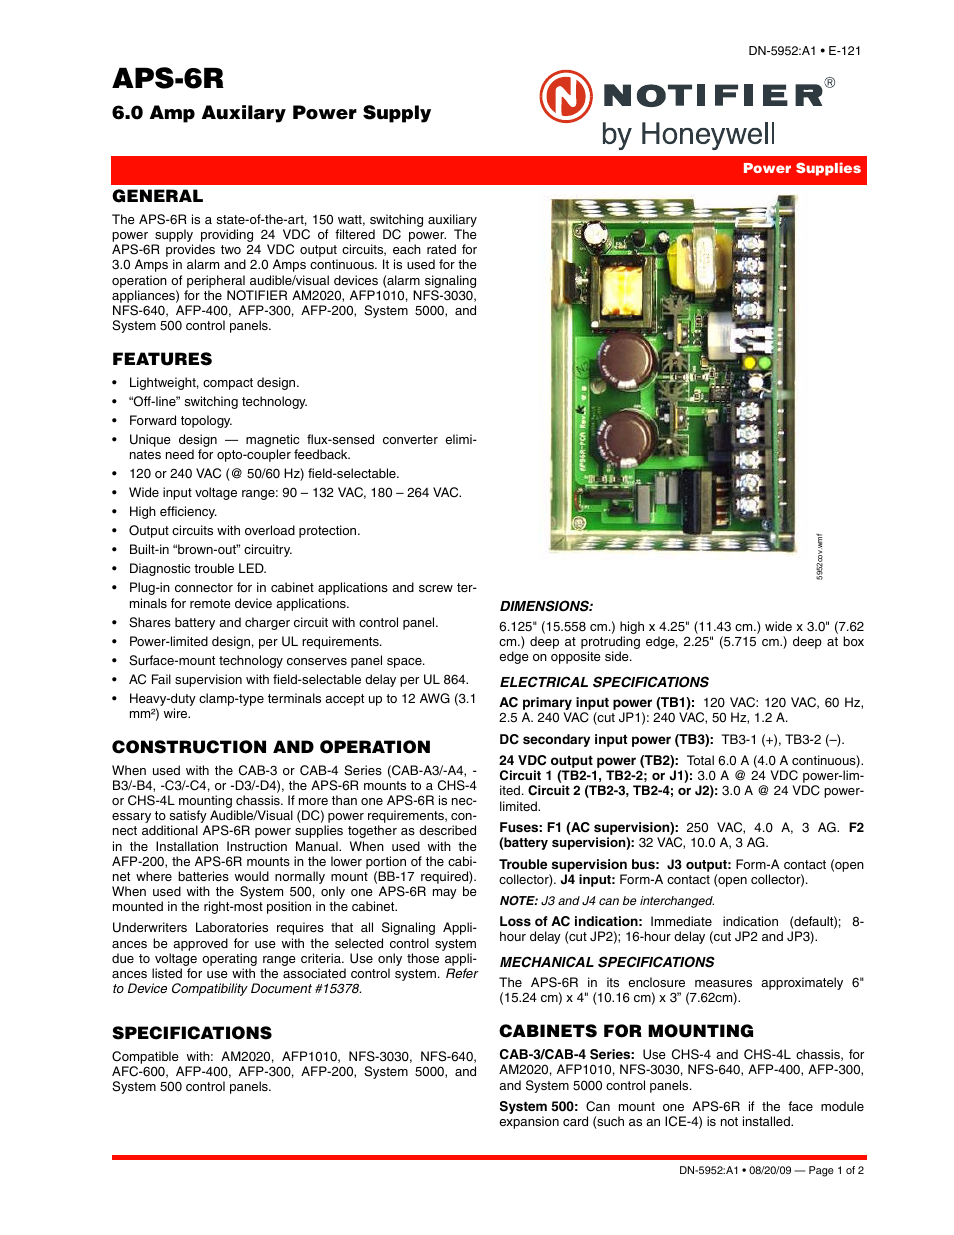 Notifier APS-6R User Manual | 2 pages